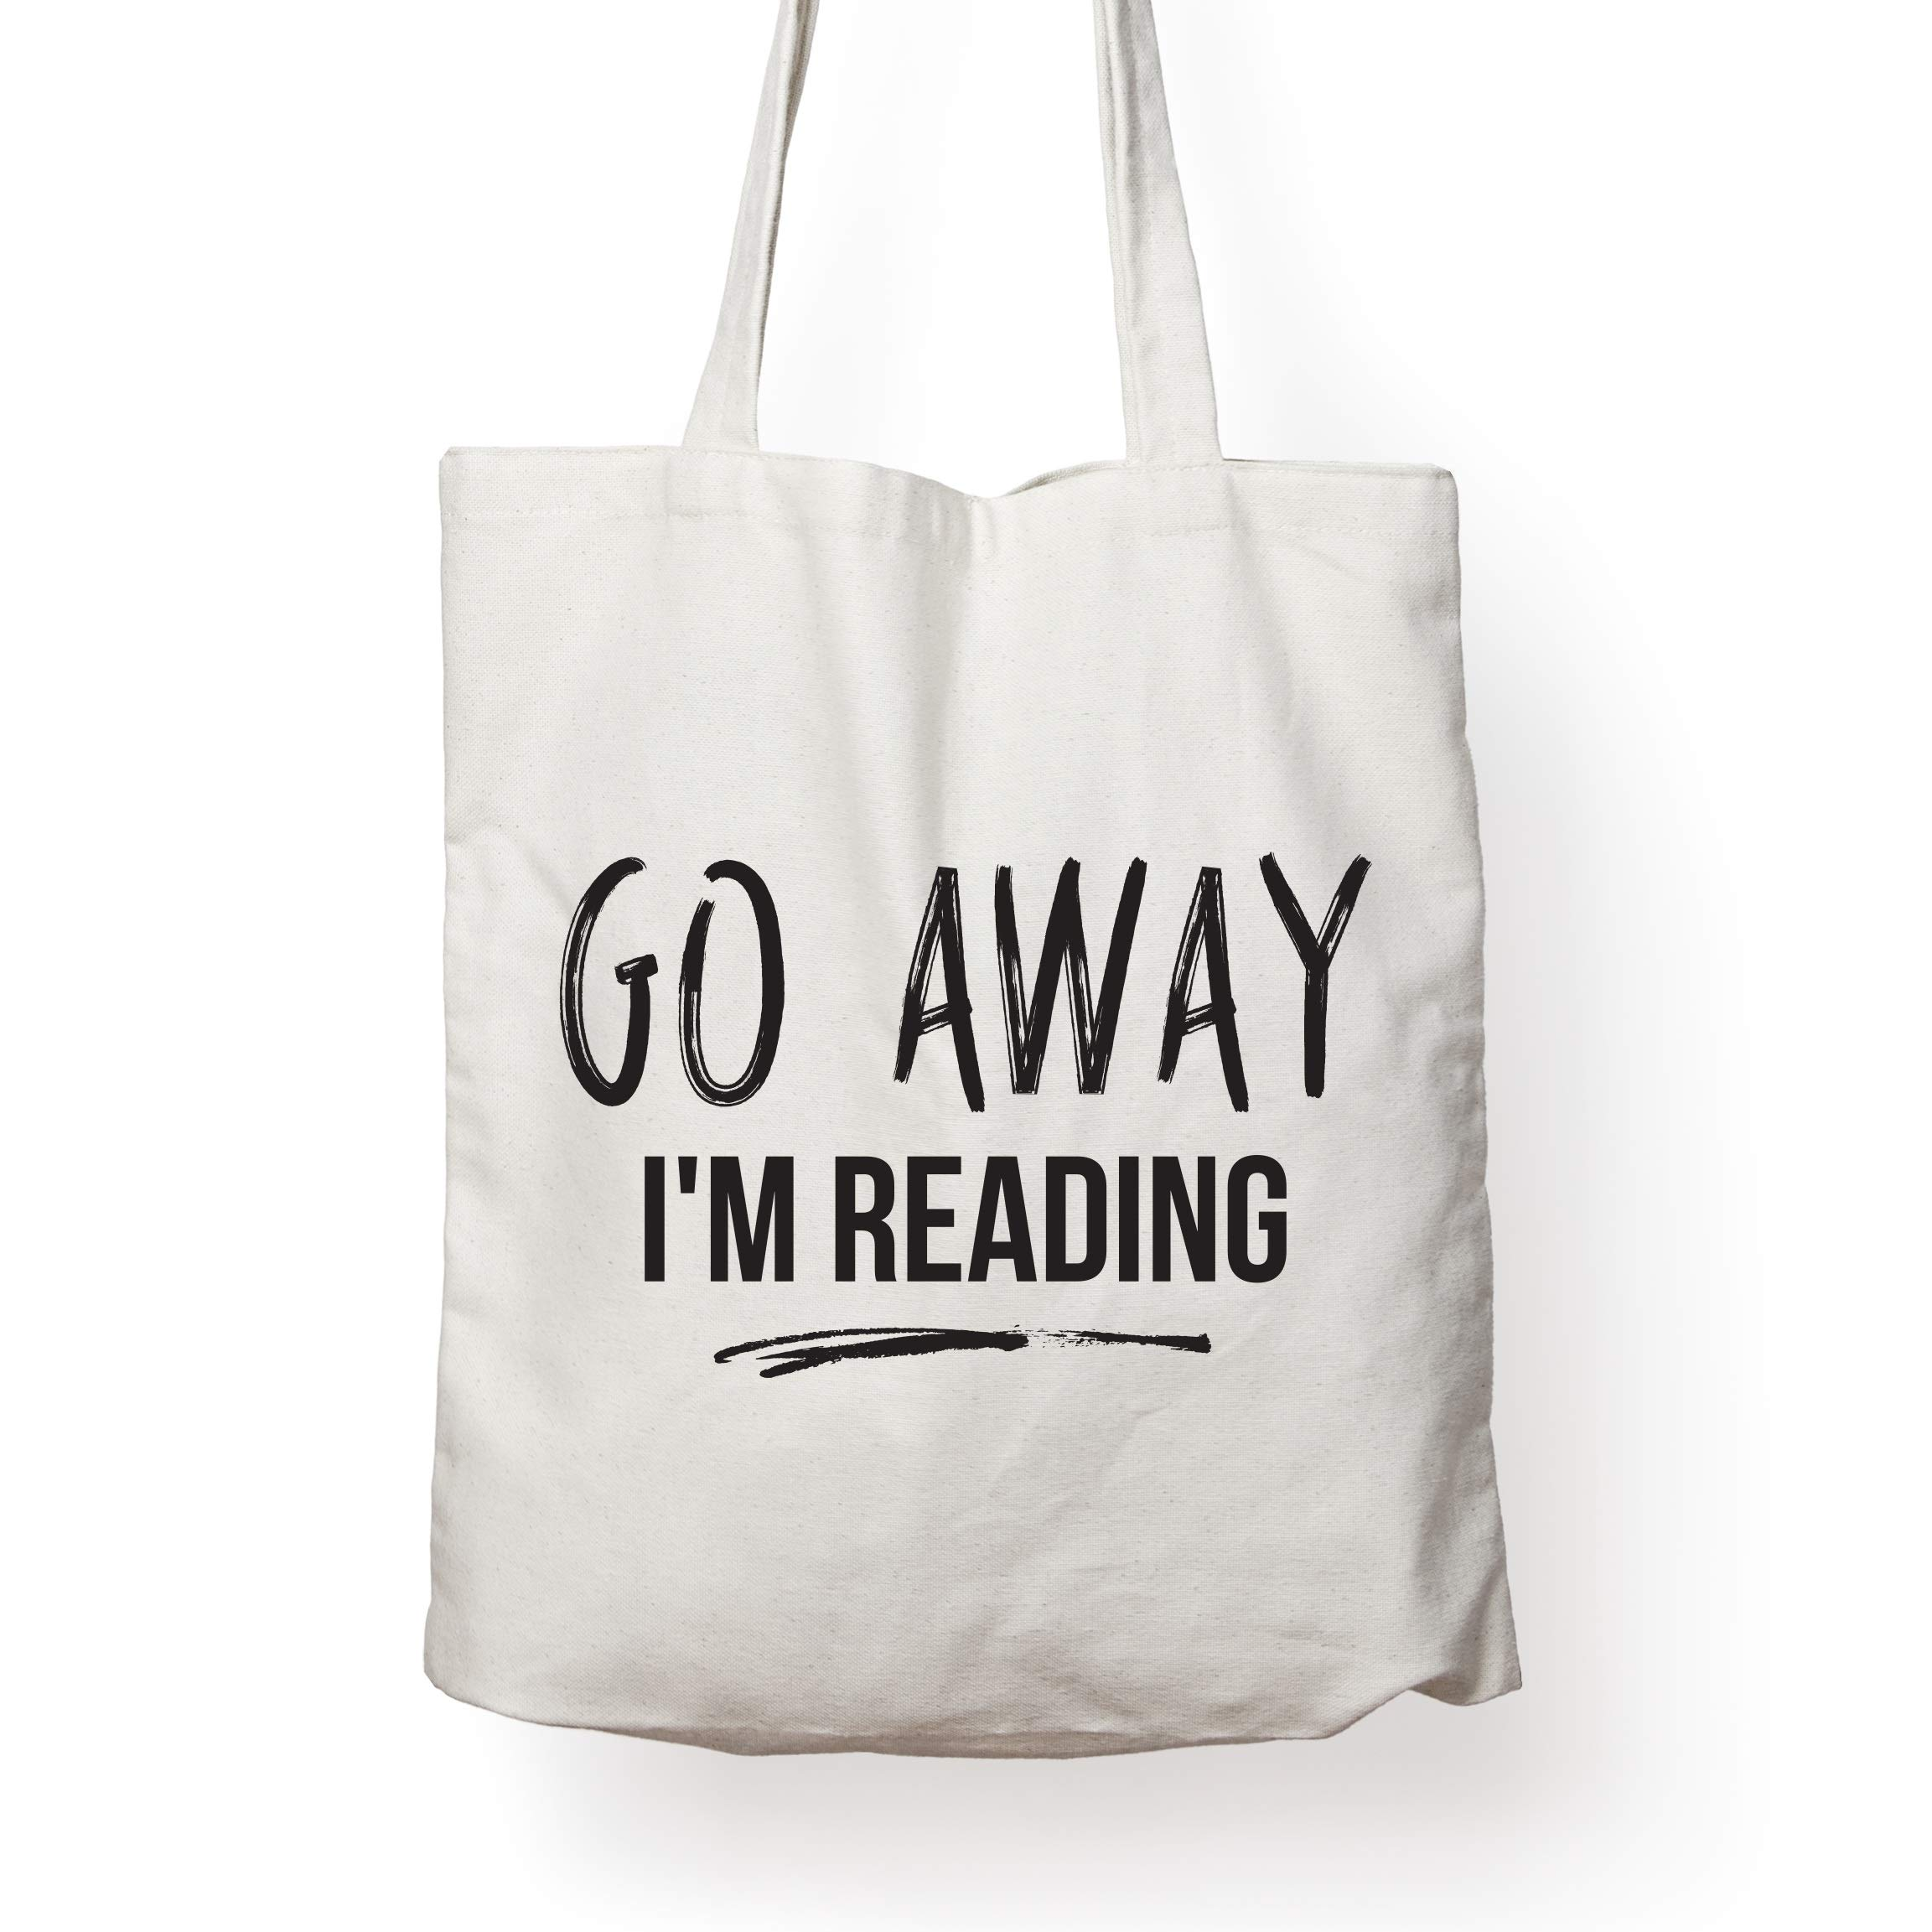 Book Lover Quote Tote Bag – GO AWAY, I'M READING - Ideal Book Gift! Readers Gift for your favorite bookworm man woman. Fun literary gifts for friends that love book related quotes and quote totes